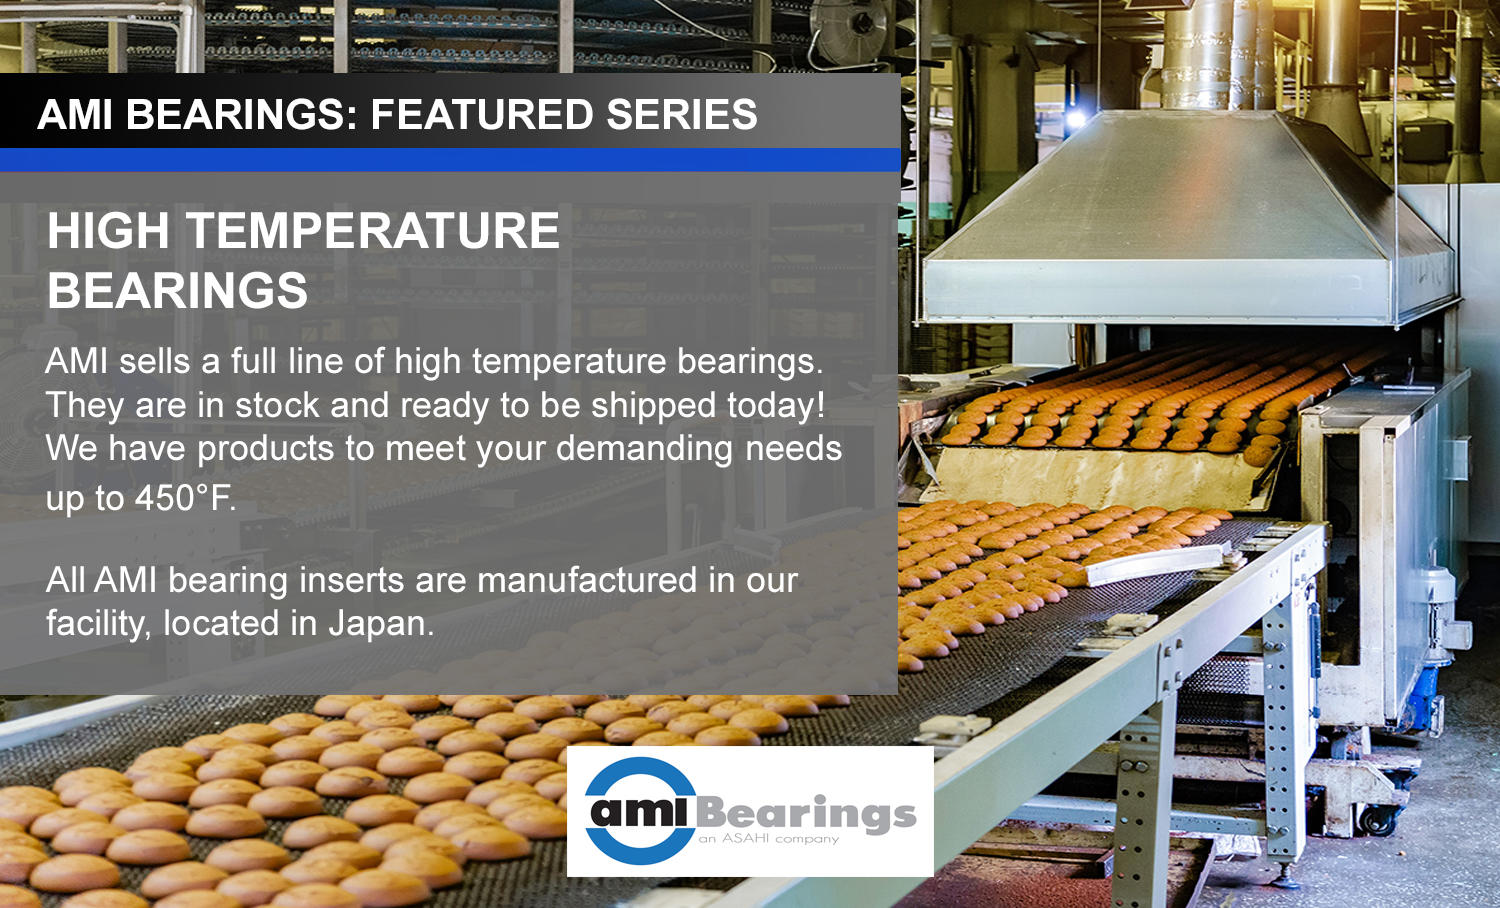 High Temperature Bearings from AMI Bearings